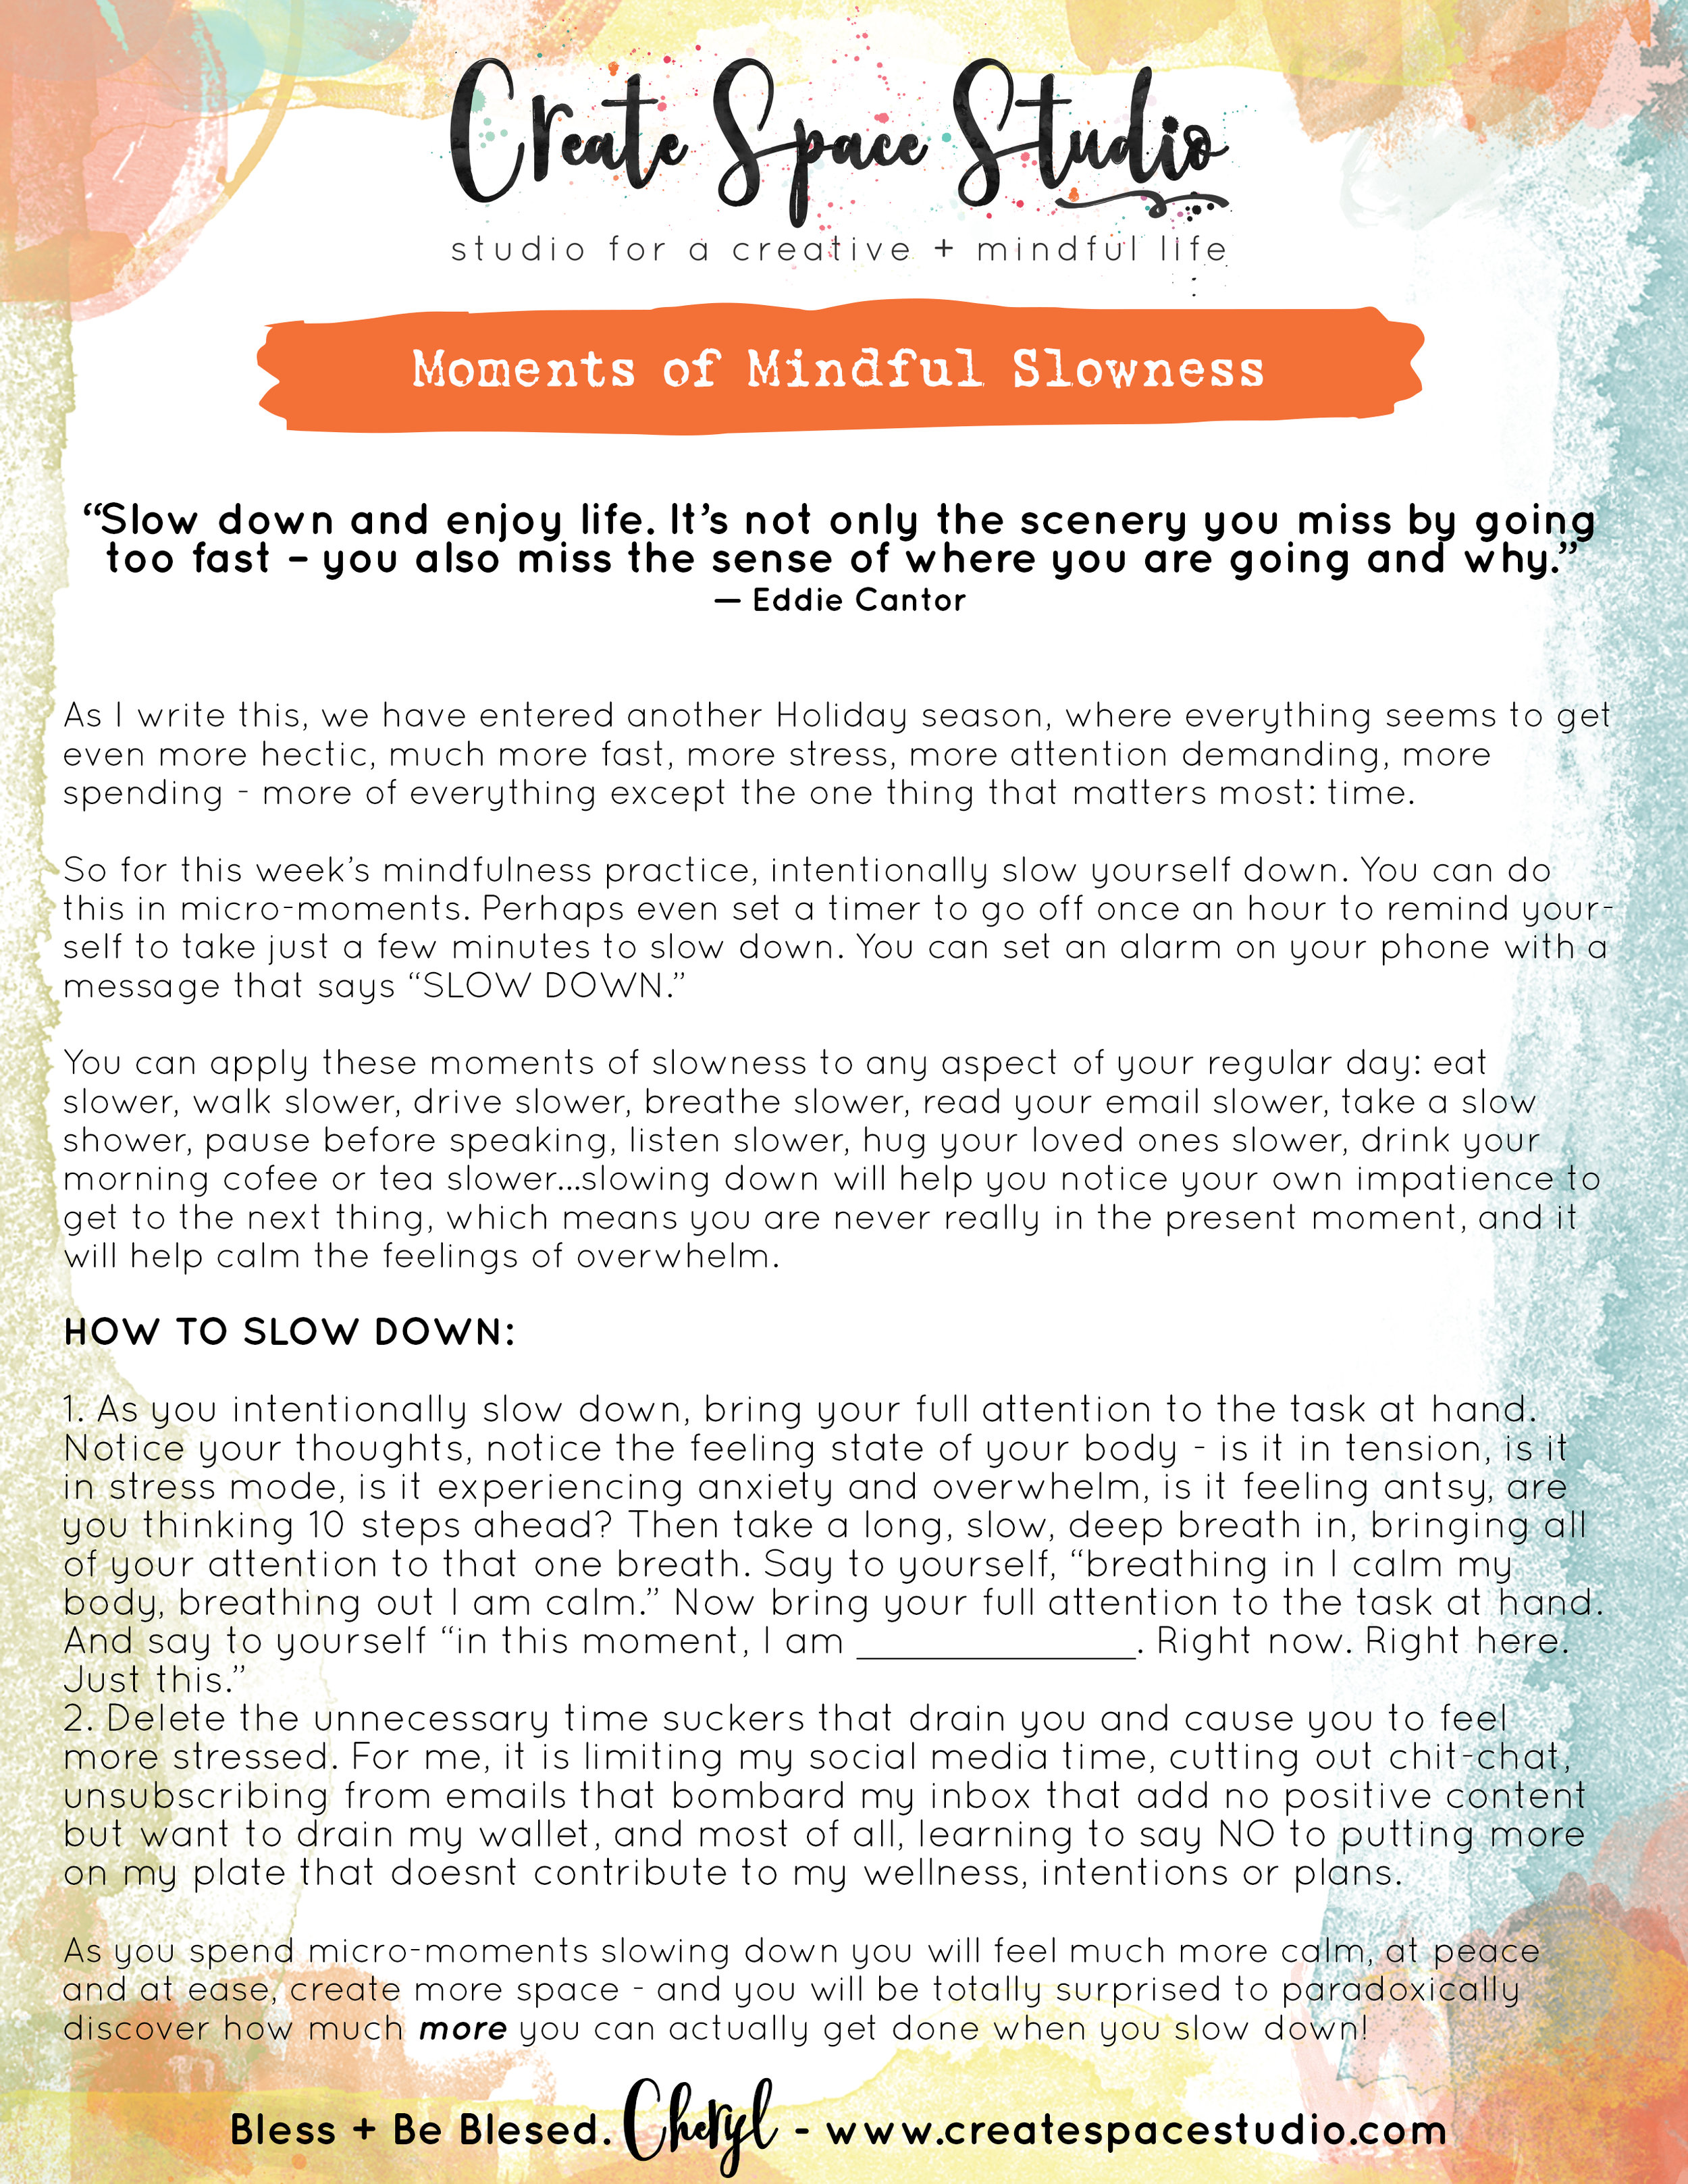 Slow Down - take micro-moments to slow down. This week's mindfulness practice from Cheryl Sosnowski at createspacestudio.com